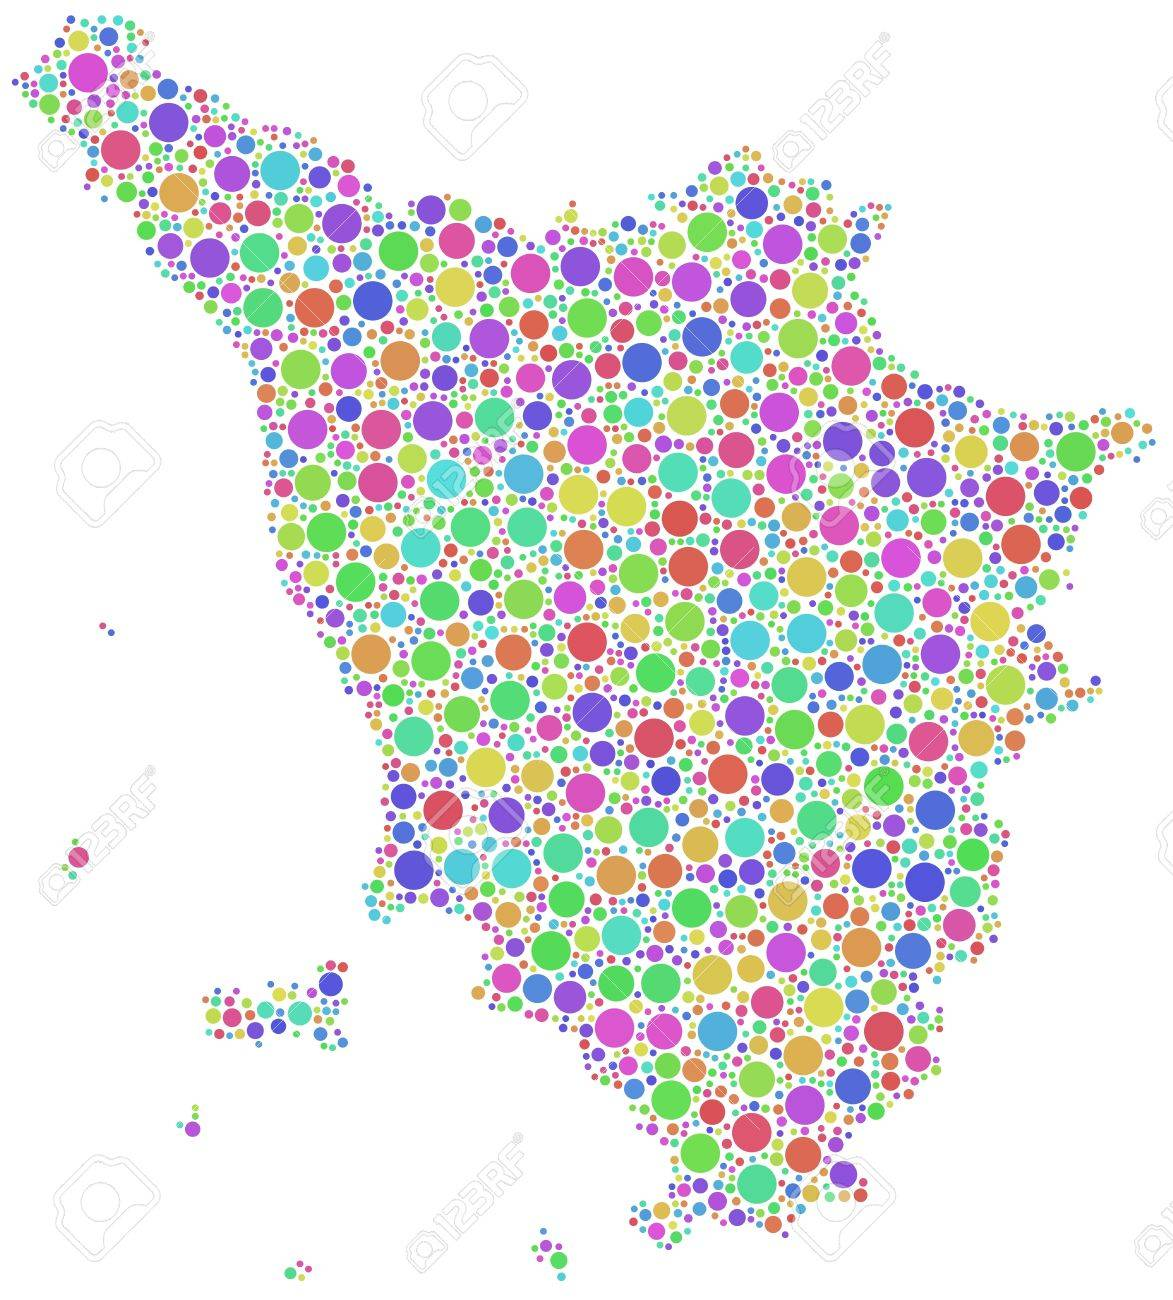 Map Of Tuscany Italy In A Mosaic Of Harlequin Bubbles Royalty - Map of tuscany